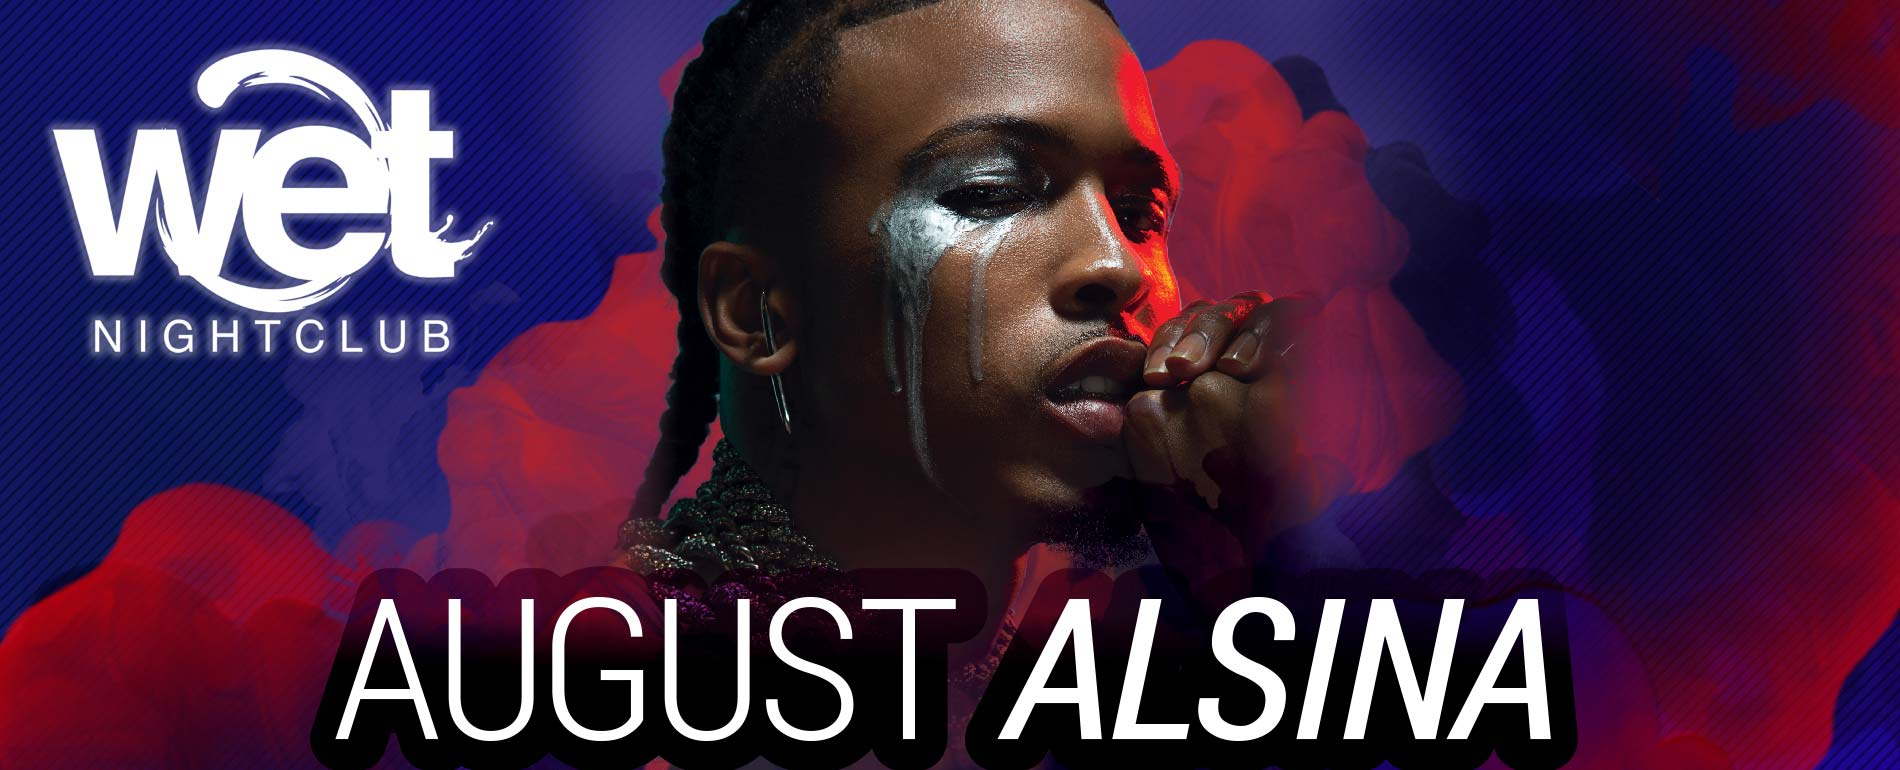 August Alsina - Poconos Nightlife